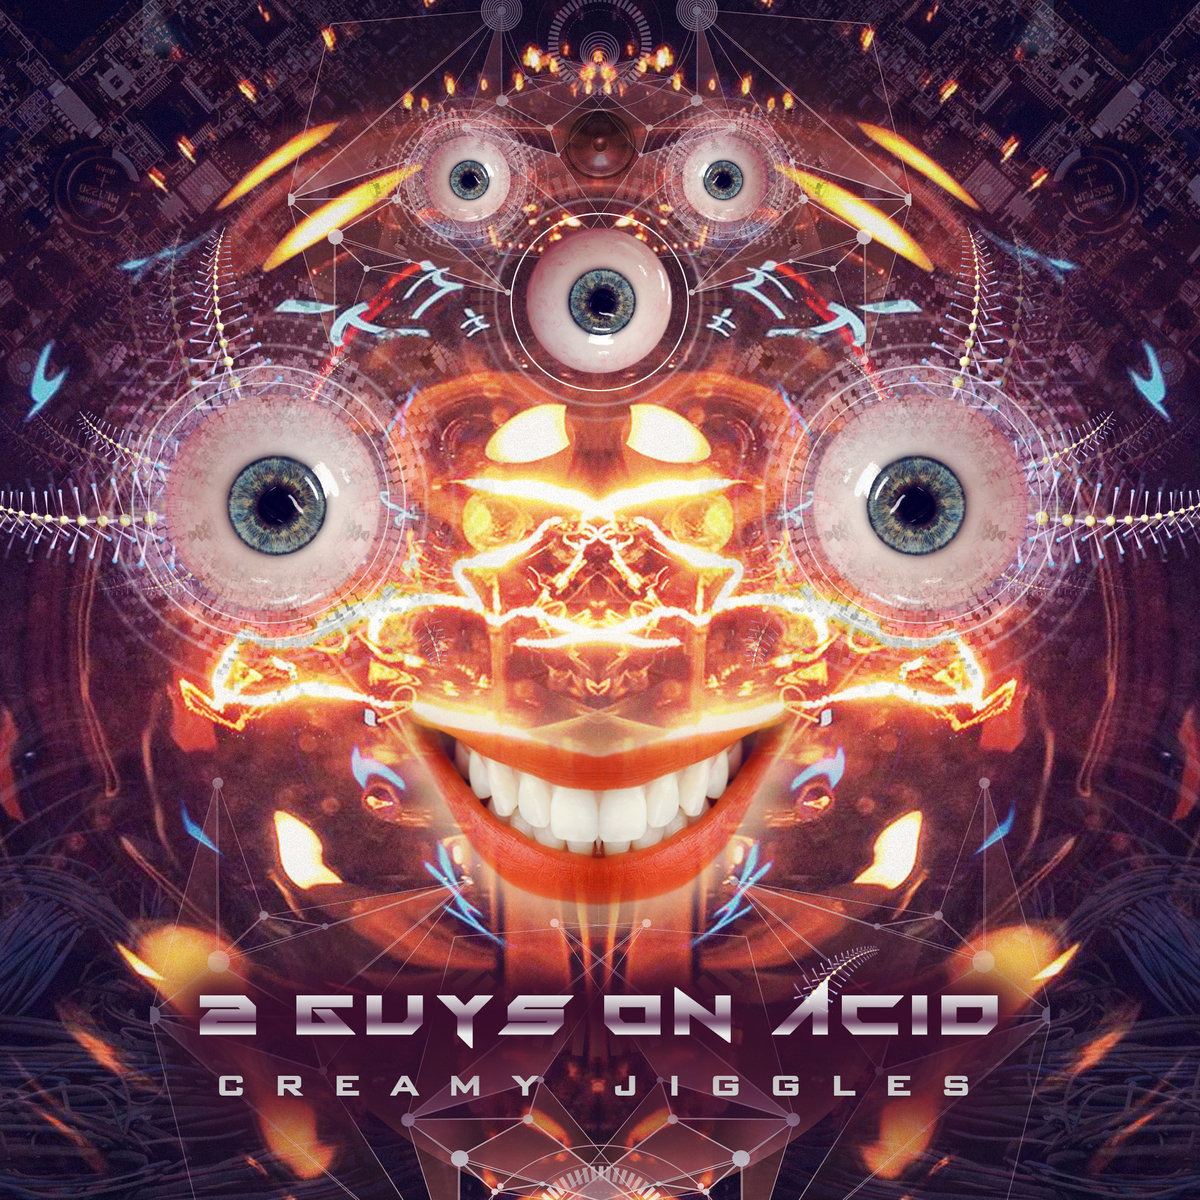 2 Guys on Acid - Creamy Jiggles